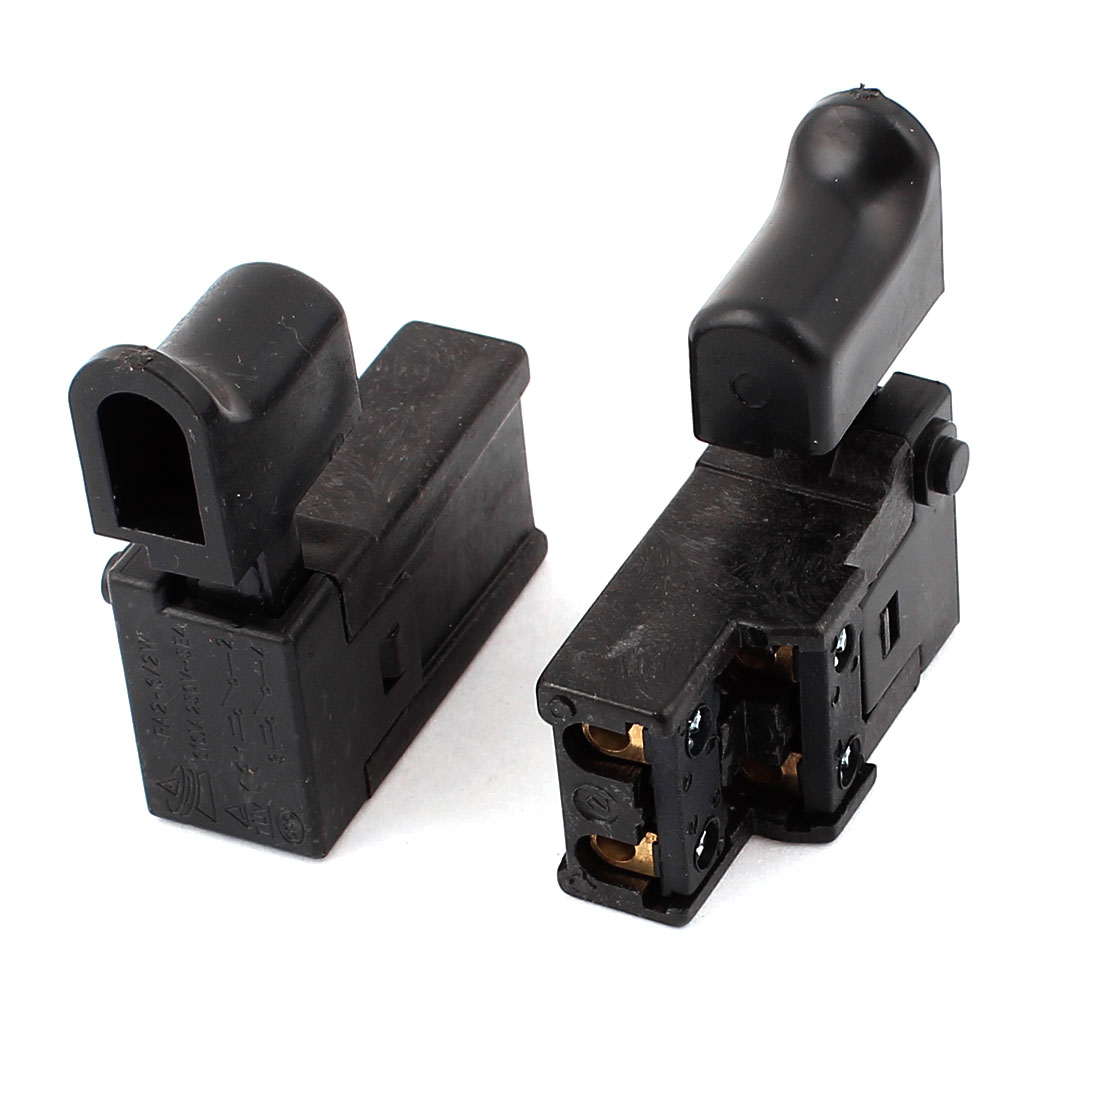 AC 250V 6A DPST NO NC Latching Electric Power Tool Trigger Switch FA2-6/2W 2pcs